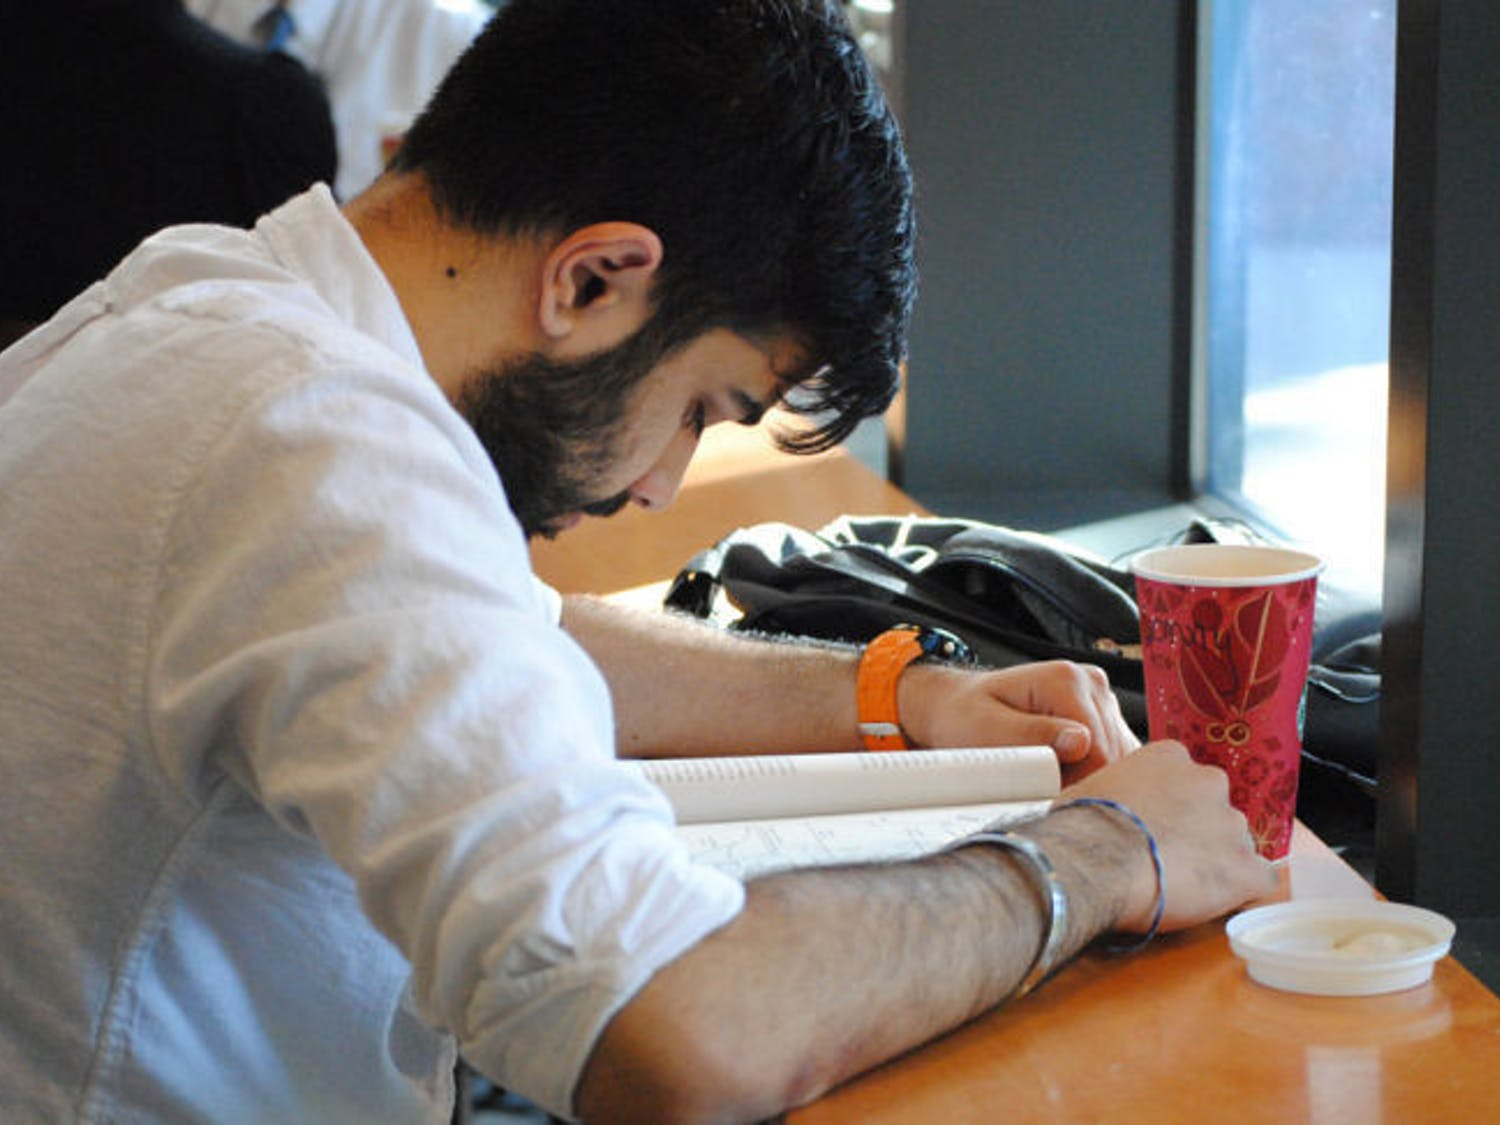 Sundeep Singh, 20, drinks coffee while studying at the Library West Starbucks on Wednesday afternoon. Recent studies suggest people do not regularly consume coffee during the hours that would have the strongest effect.